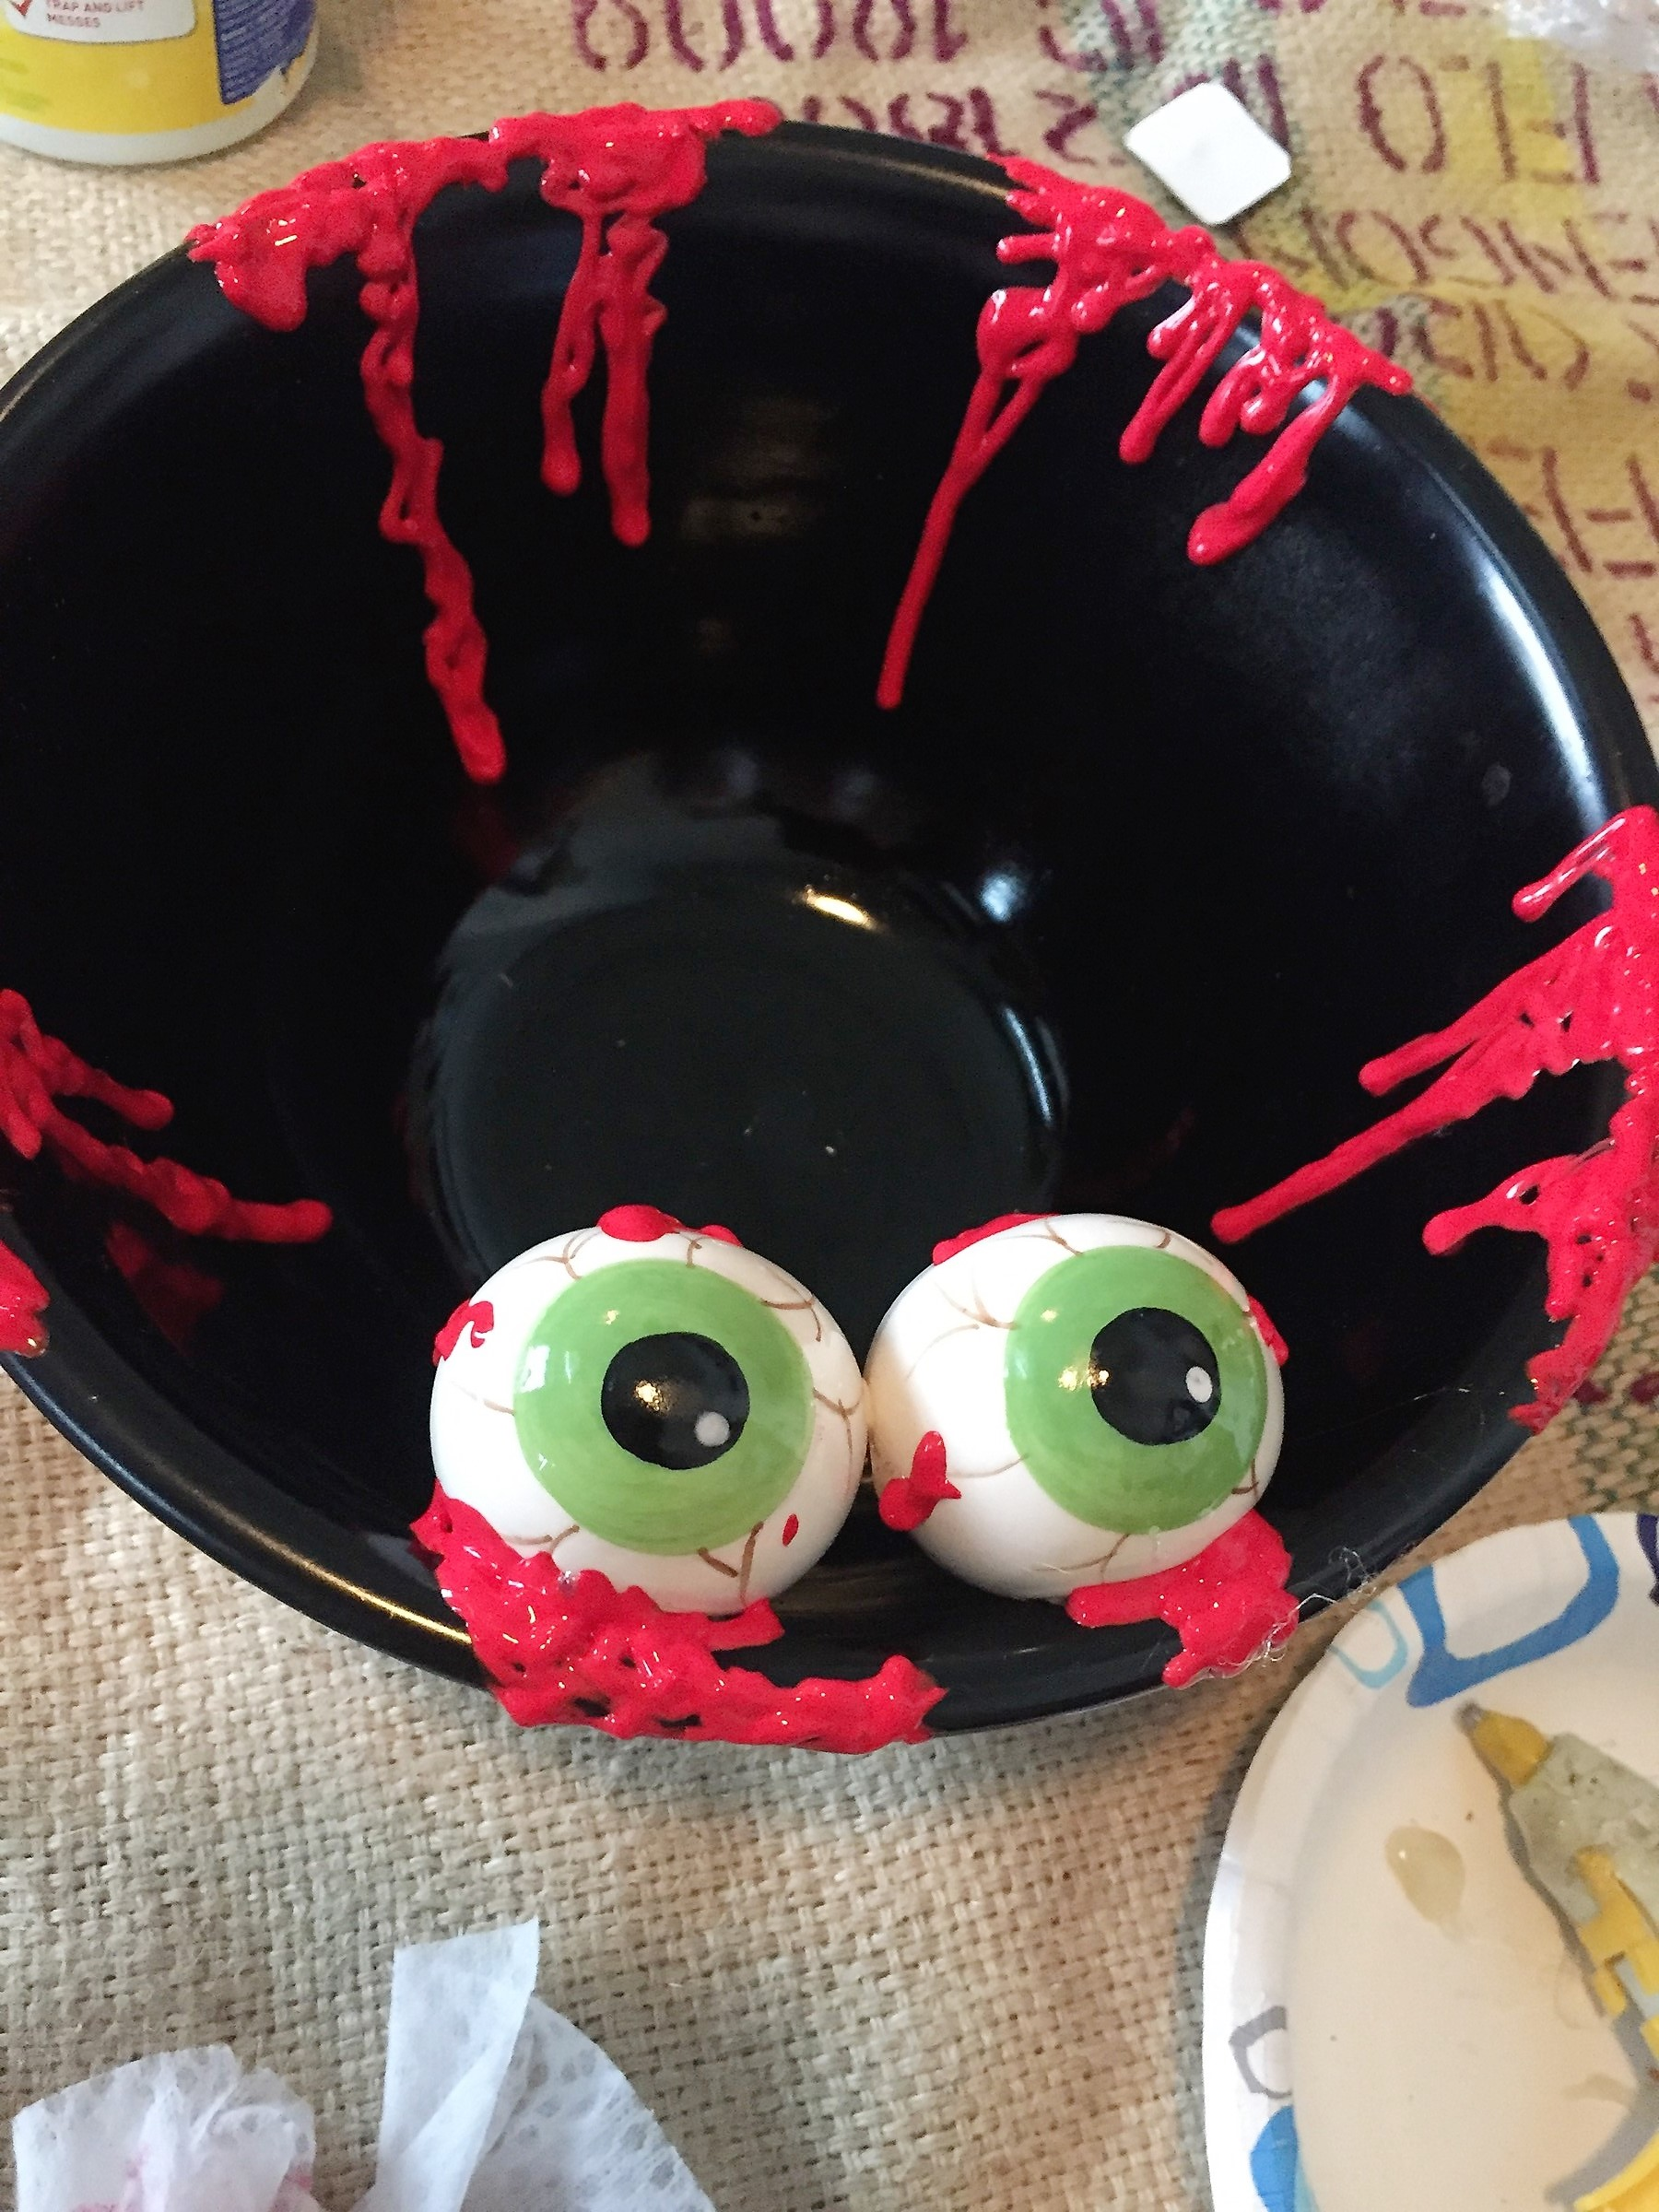 Tim's eyeball bowl after add more red paint squiggles.